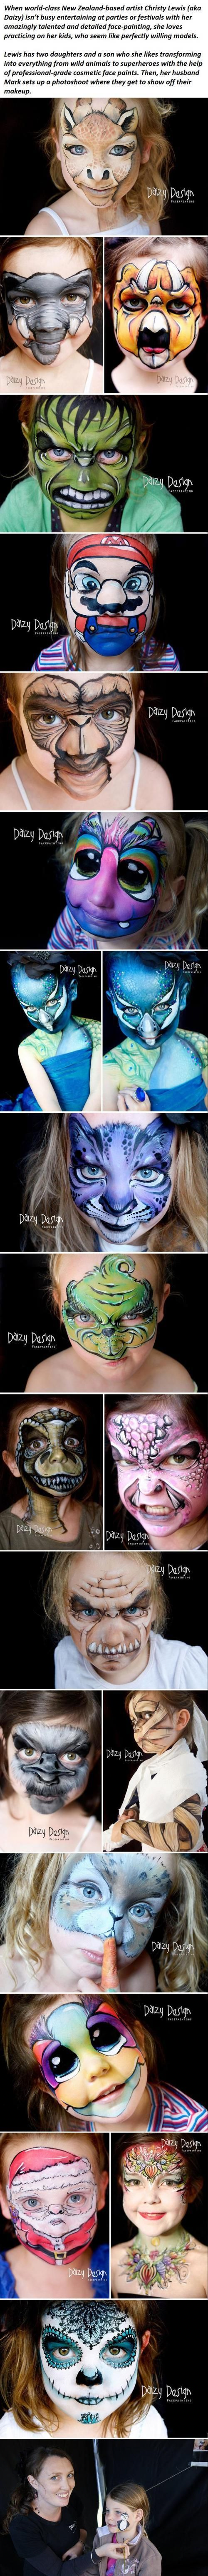 A Mother Turns Her Children's Faces Into Wild And Fantastic Creatures... -   Misc